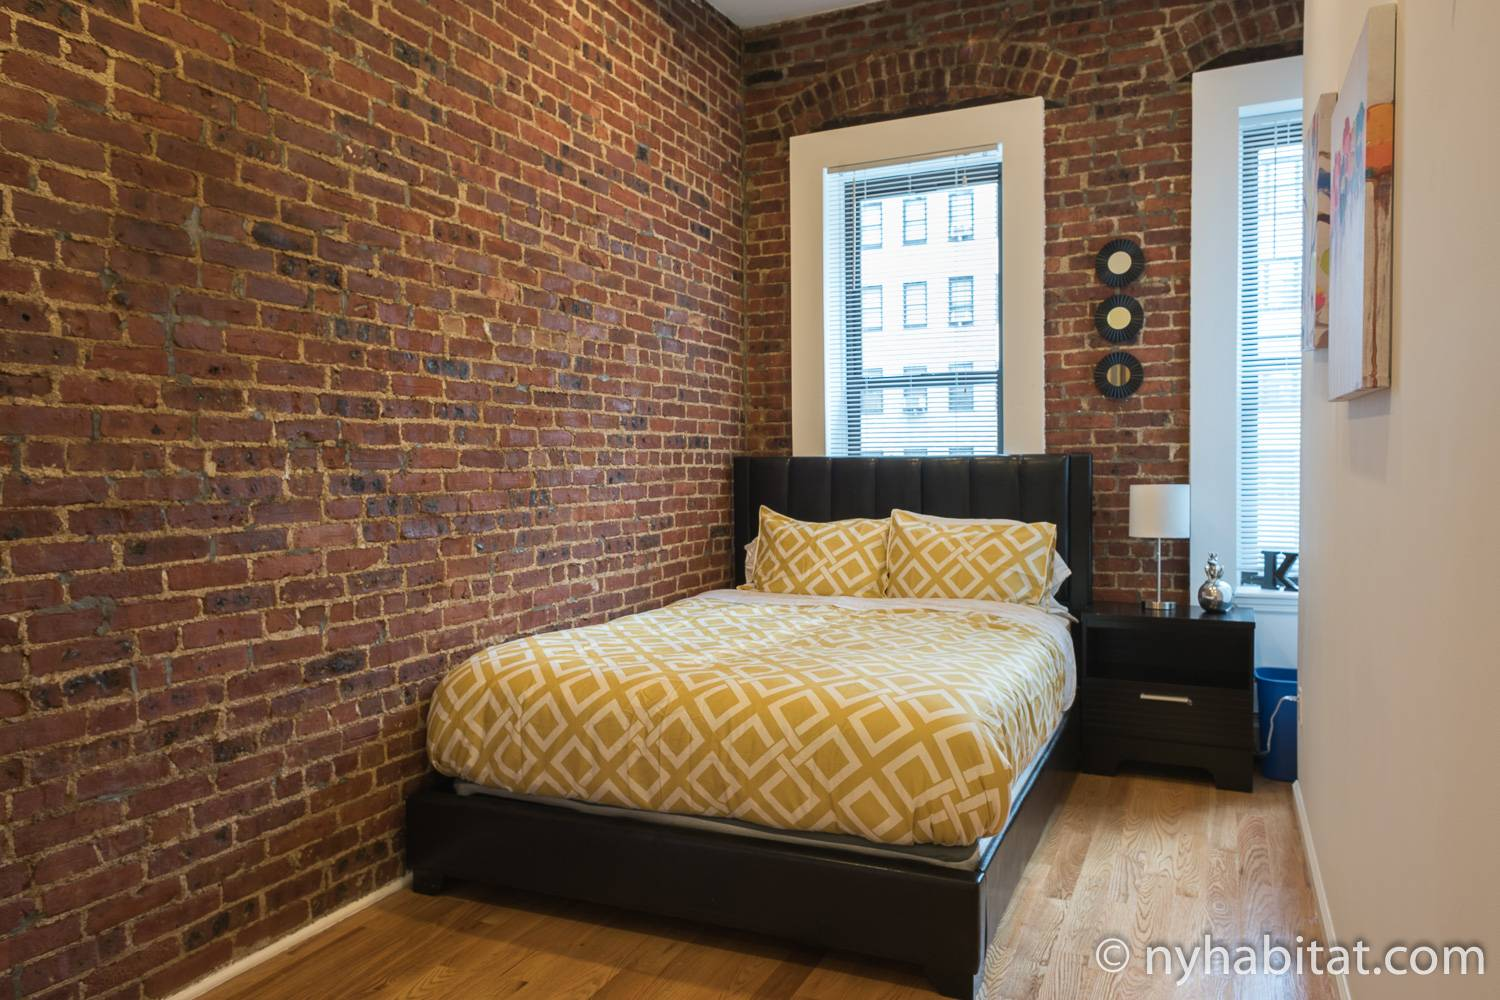 Image of bedroom in vacation rental NY-16561 with exposed brick walls and a yellow double bed.